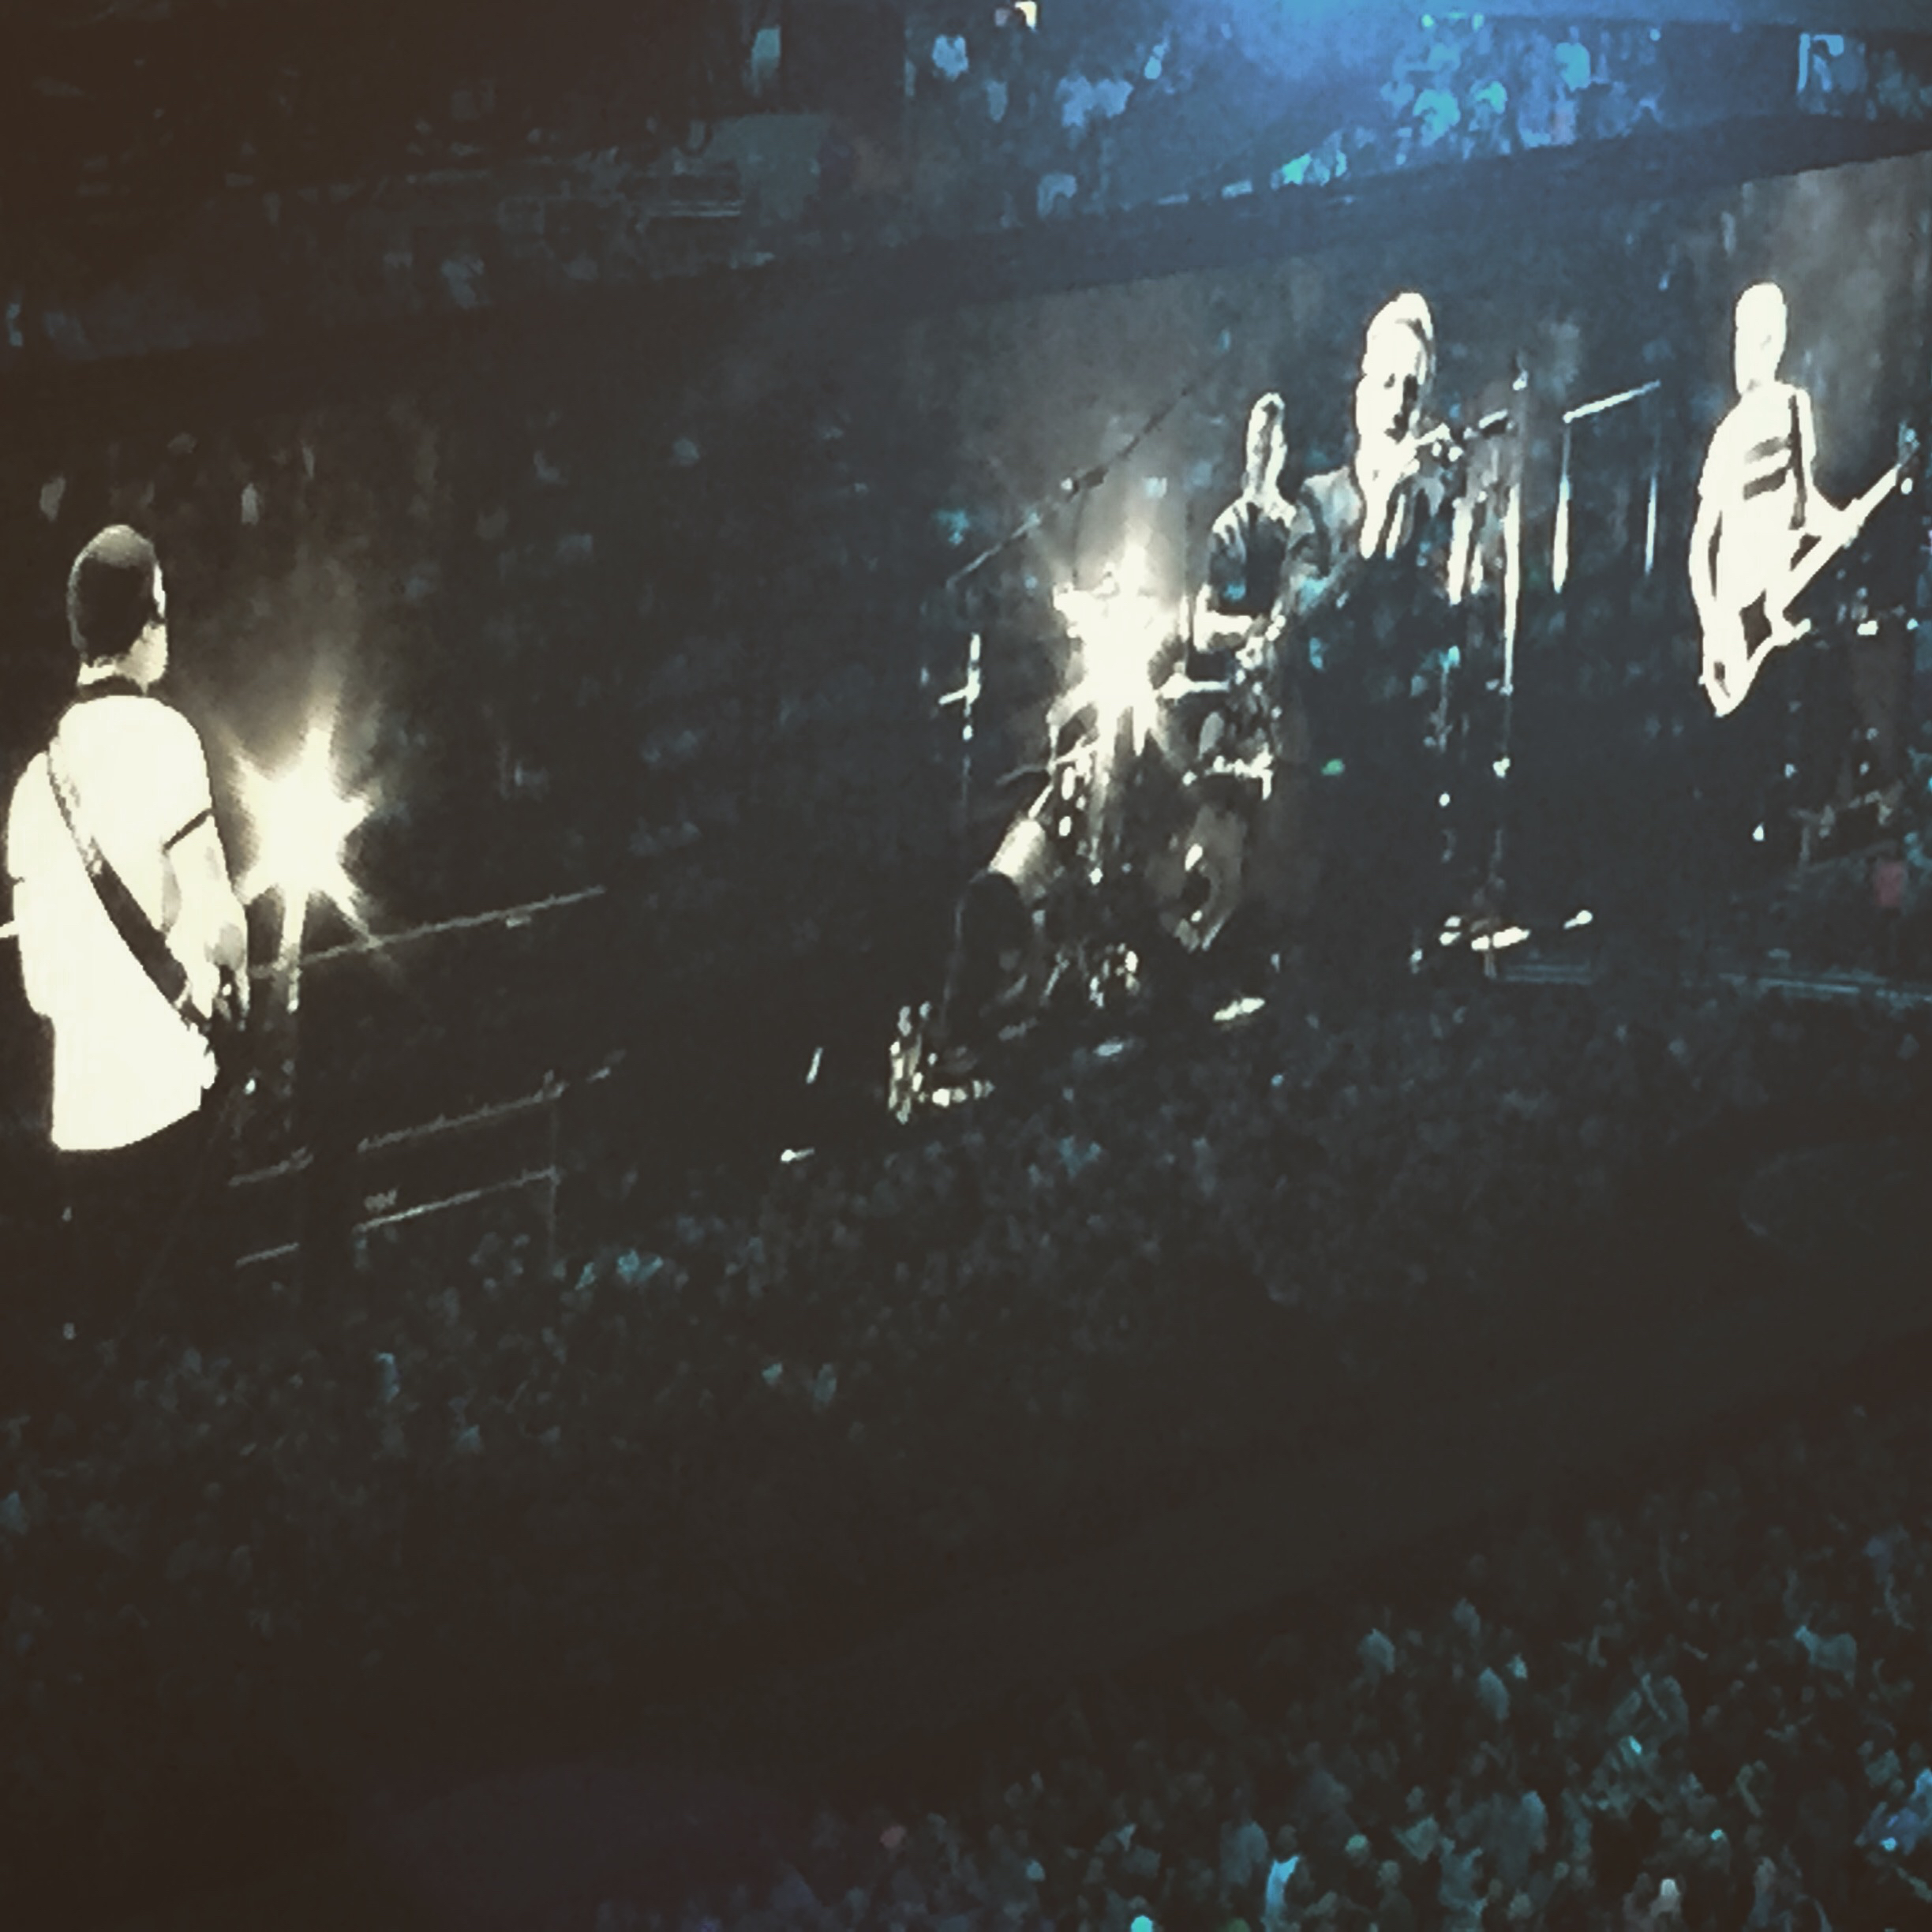 See you soon, boys! (Left to Right: The Edge, Larry Mullen Jr., Bono, and Adam Clayton) [Photo Credit: Farnaz Alimehri]